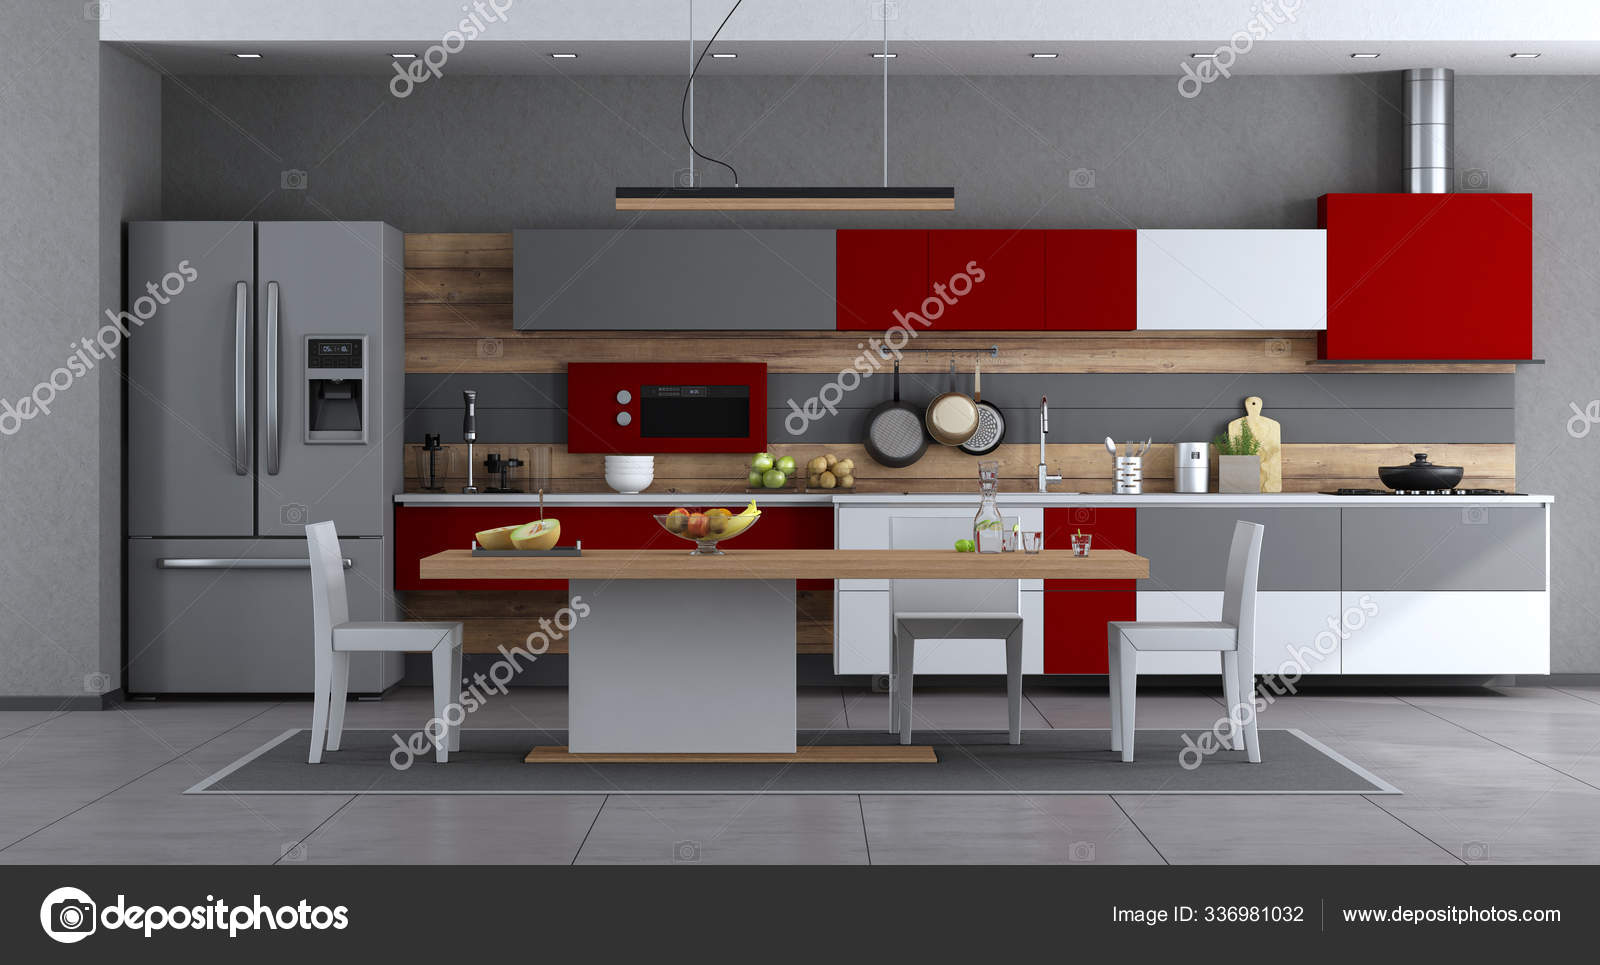 Picture of: Red White Gray Modern Kitchen Minimalist Dining Table Chairs Rendering Stock Photo C Panthermediaseller 336981032